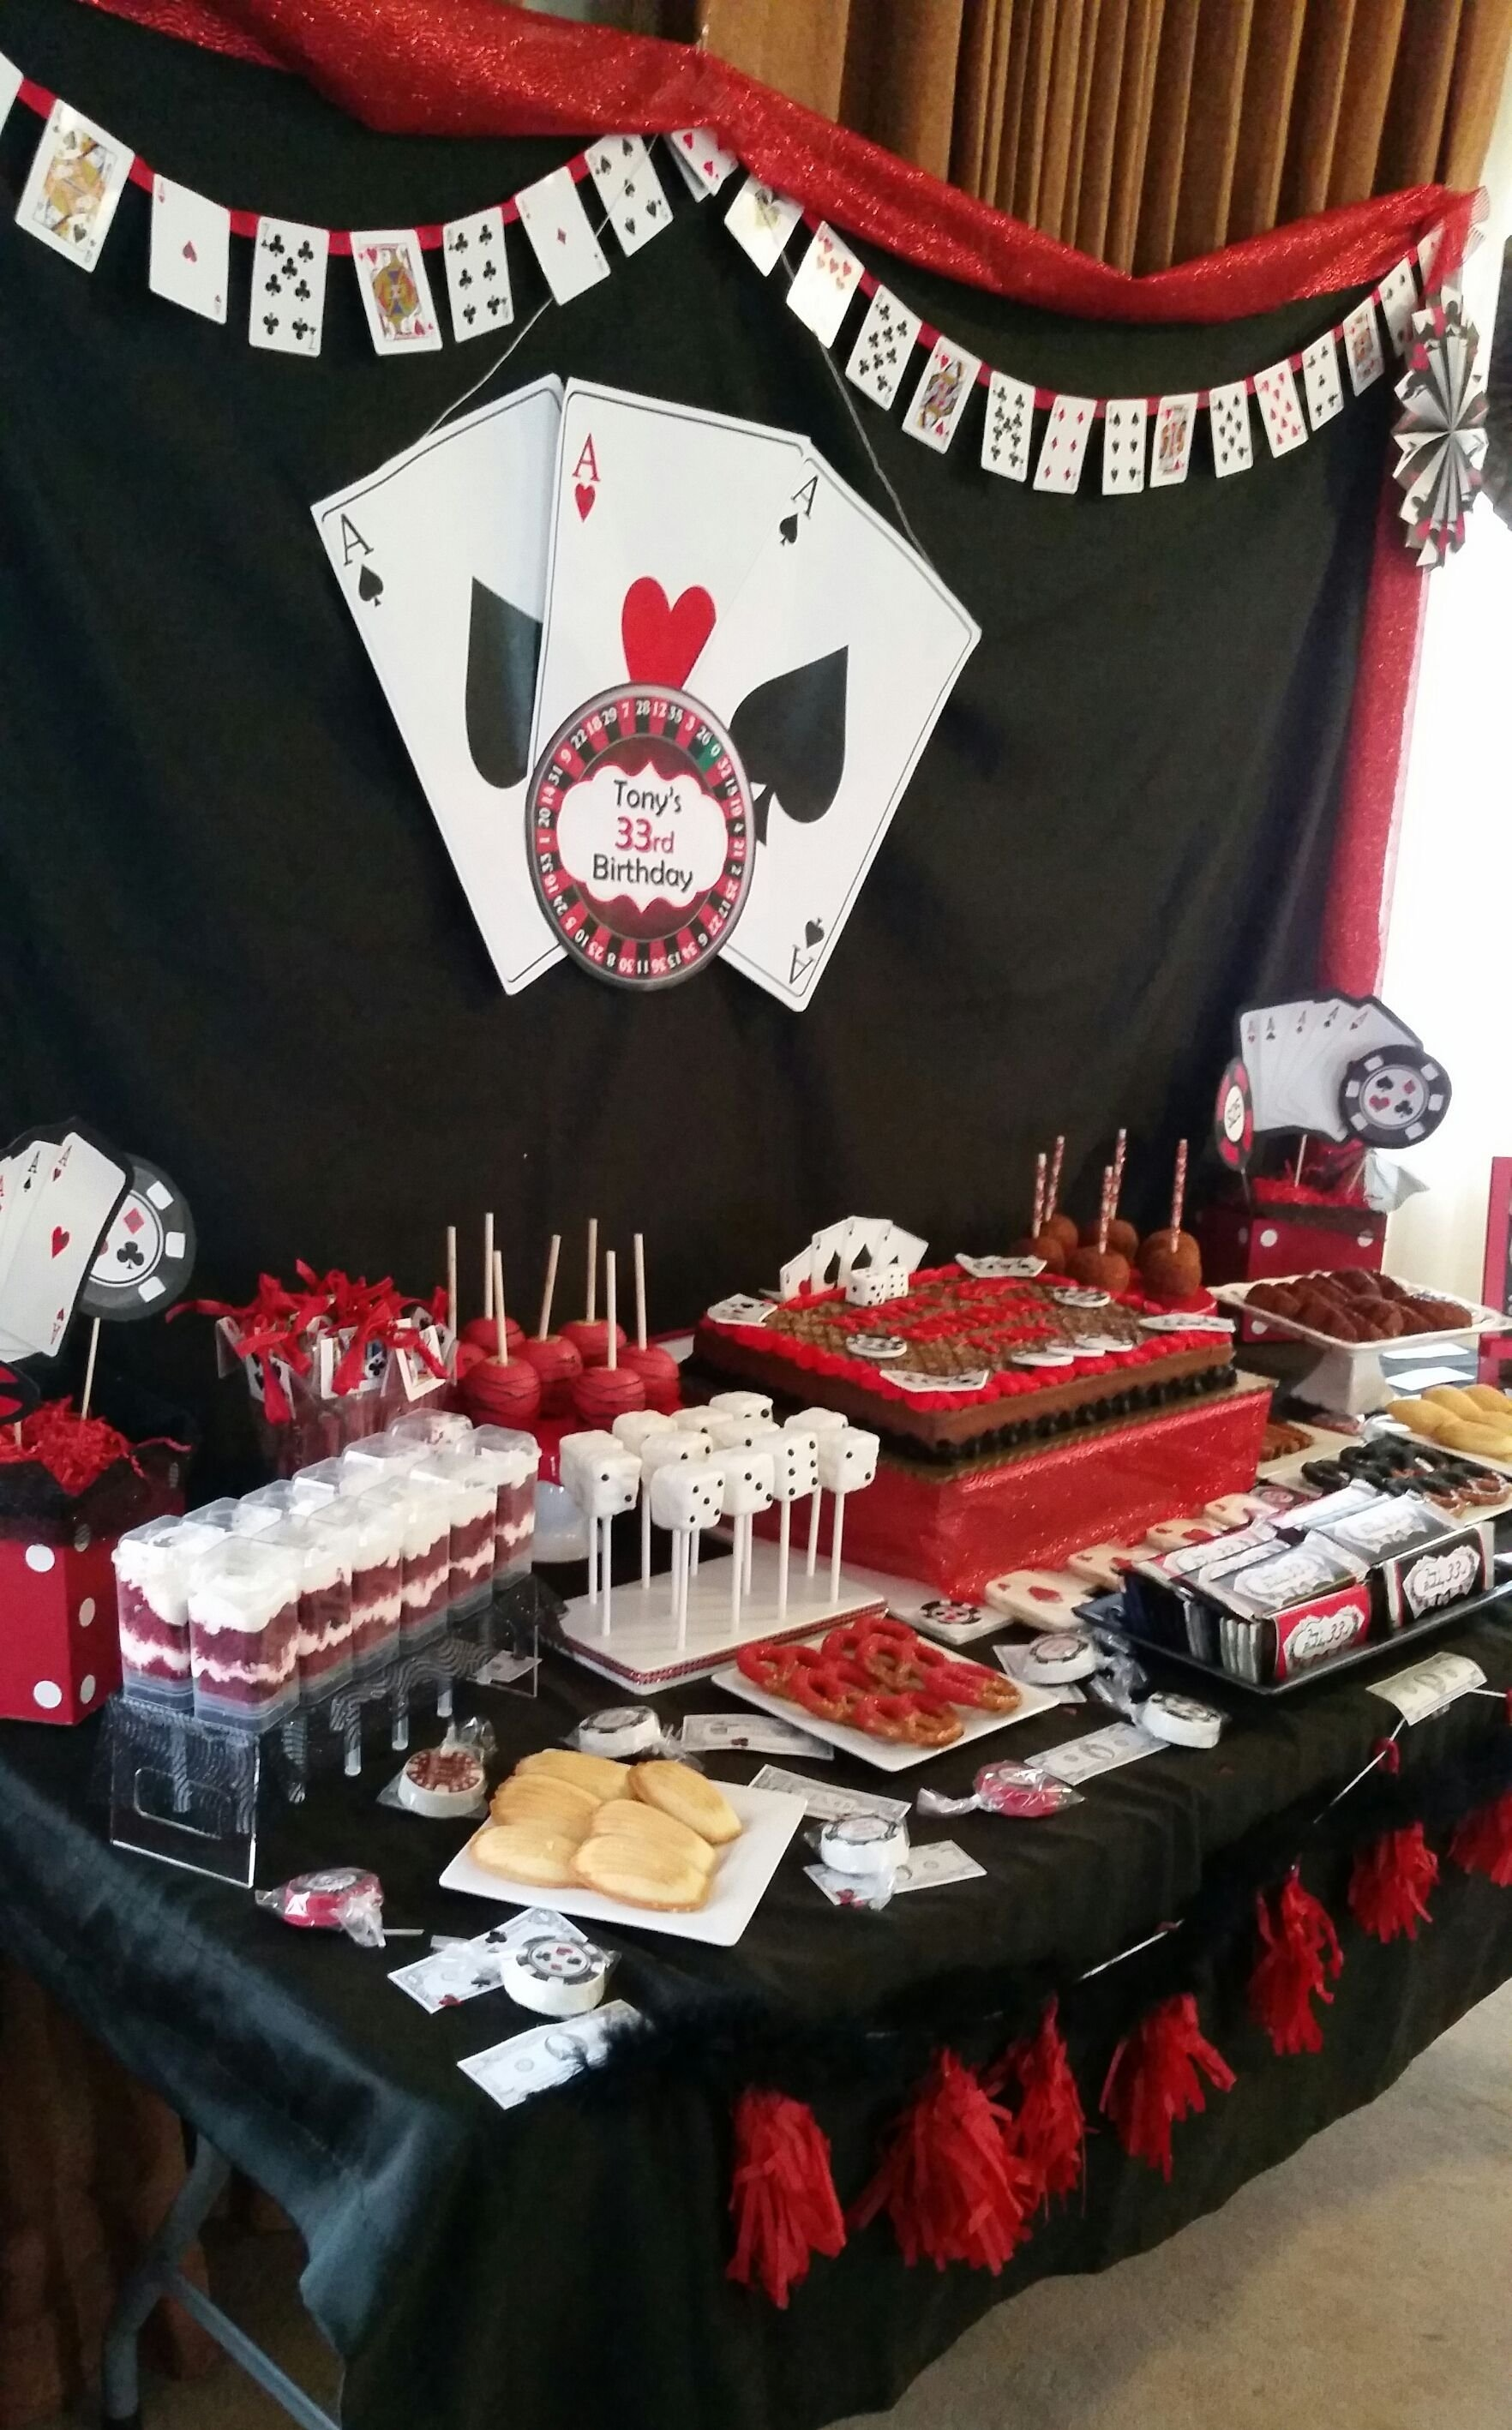 10 Attractive Kids Birthday Party Ideas Las Vegas pinso sweet candy buffets aka chiloso gummy bear on so sweet 1 2020